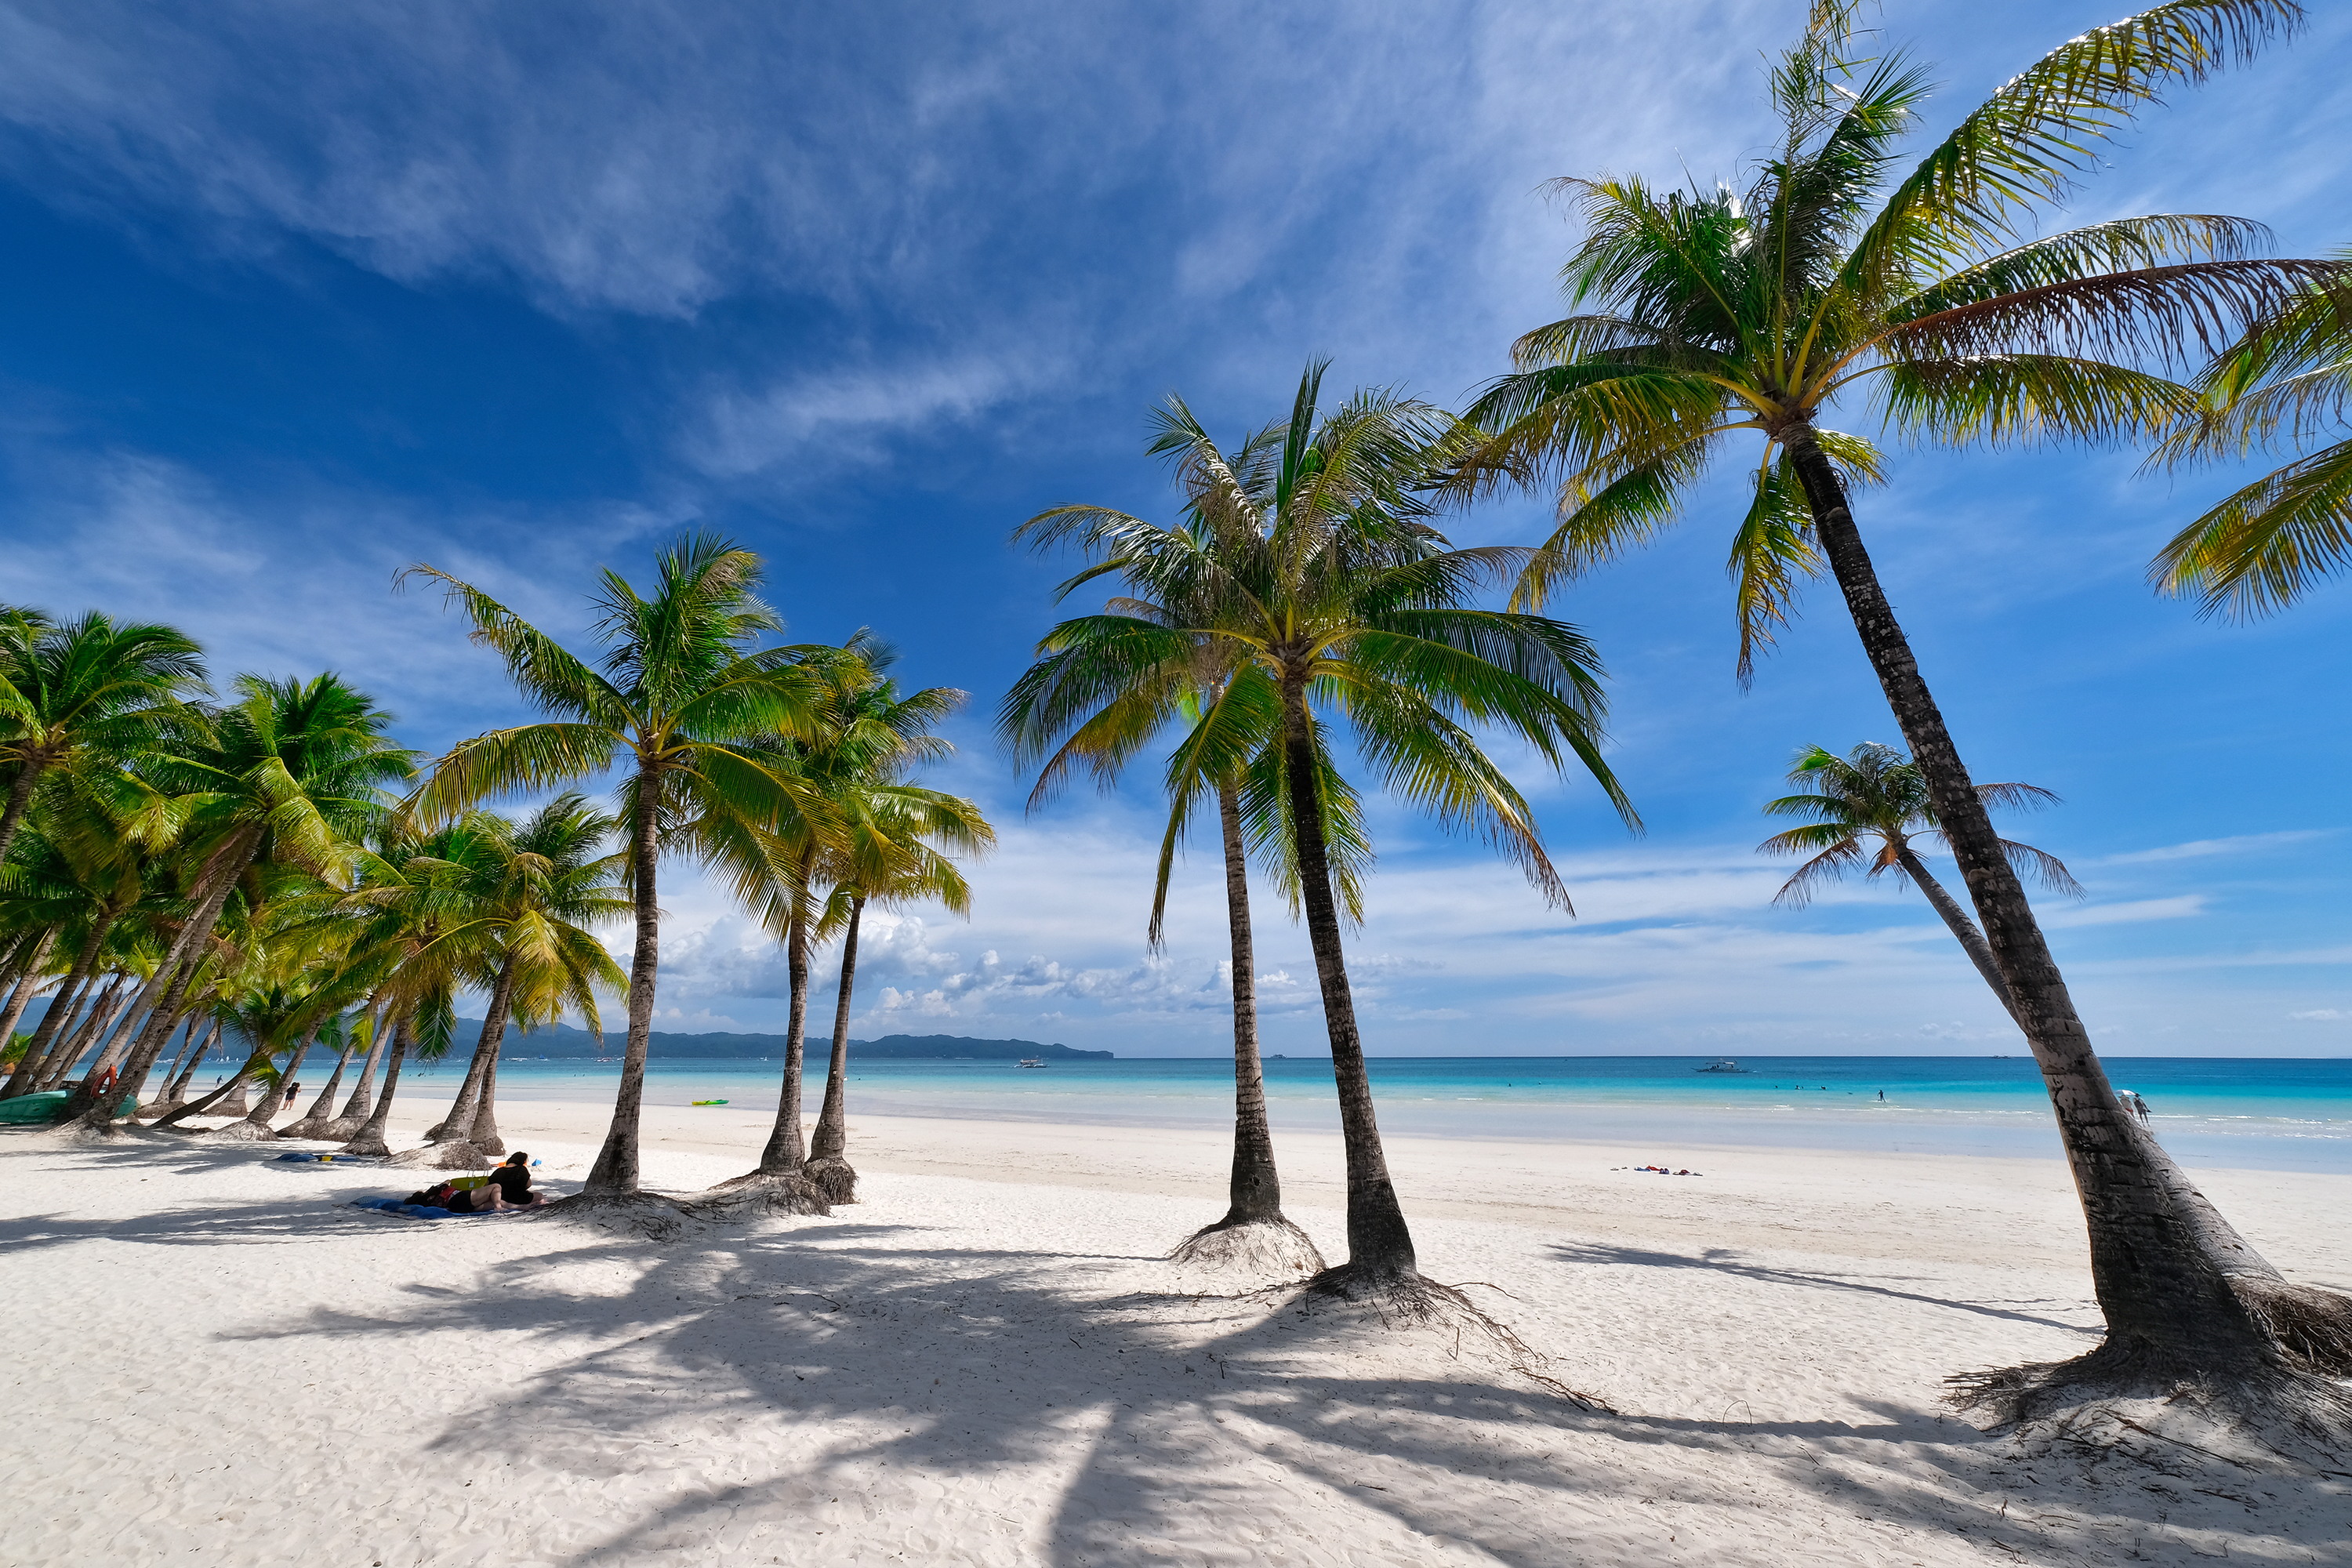 Package Deal to Boracay with Jinjiang Hotel & Philippine Airlines for 5 Days & 4 Nights from Manila - day 5